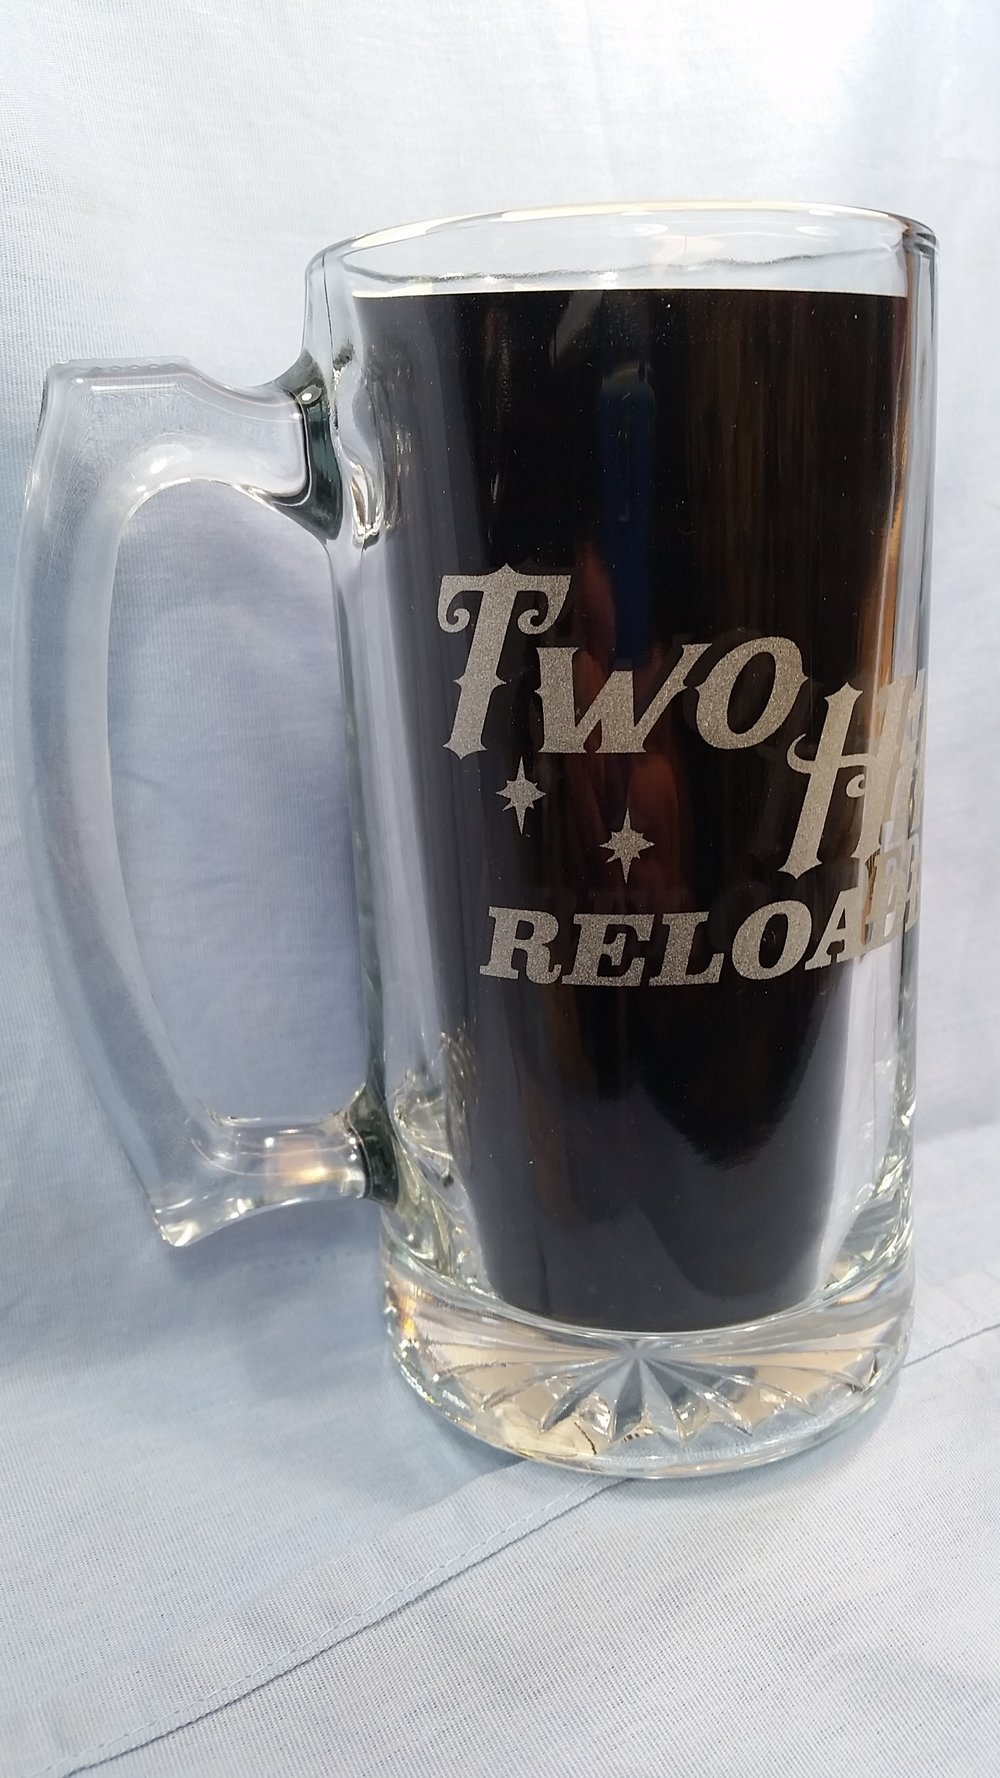 Have your next cold one in this 24oz Beer Mug. Glass etched Two Hills Reloaded mugs are available online for $10.00 plus shipping or at our next gig. Dishwasher safe, will not scratch off or fade. -